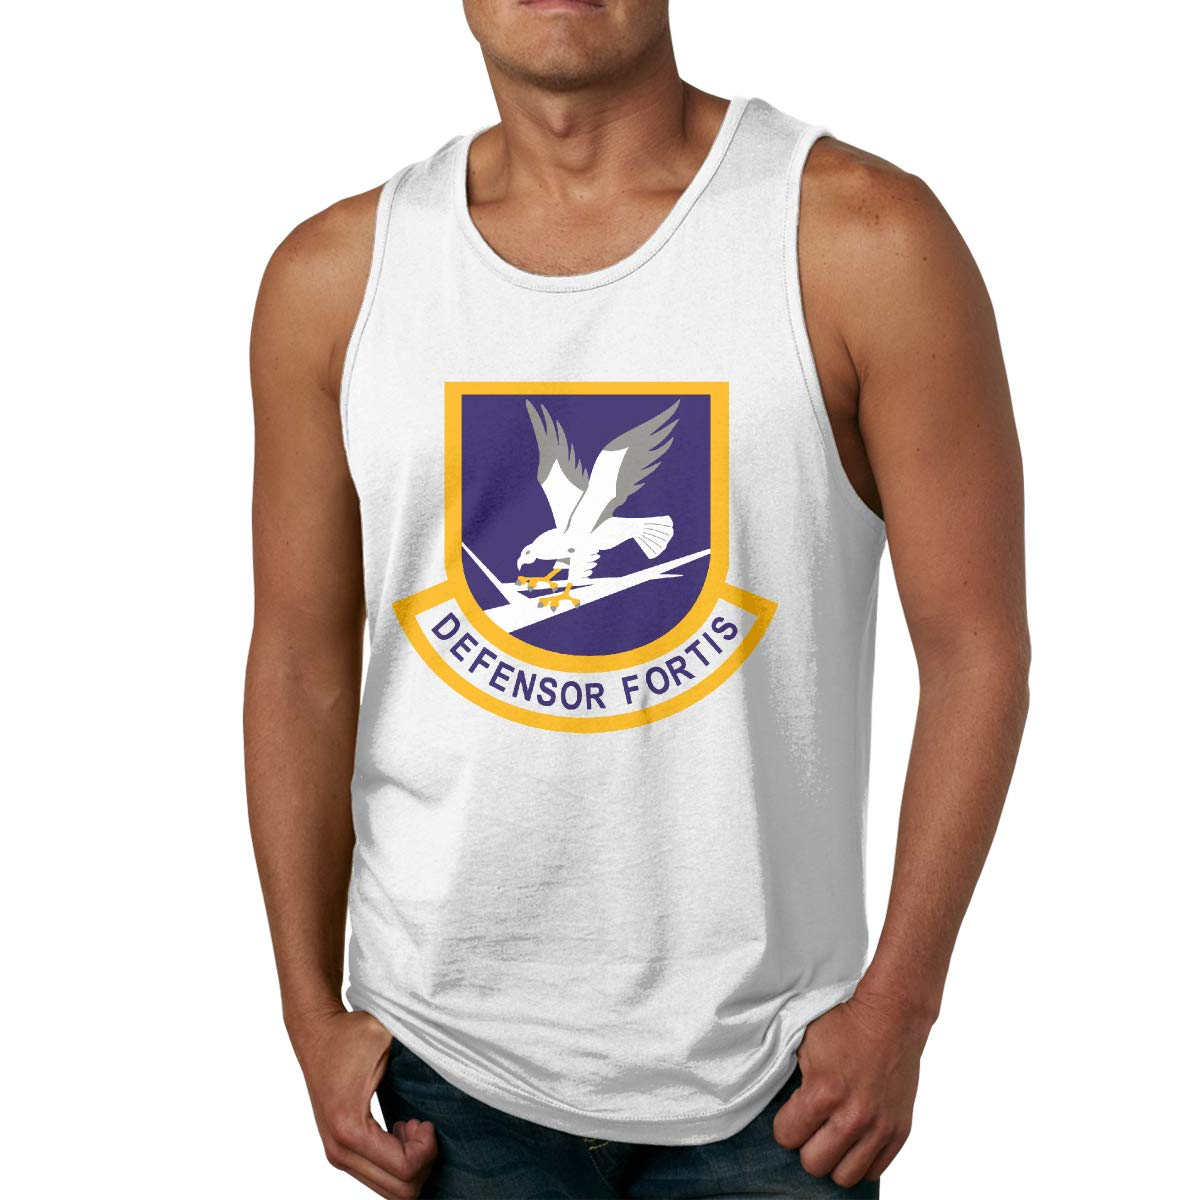 Defensor Fortis Air Male Printed Vest Sports Tank-Top Shirts Leisure Sleeveless Shirt